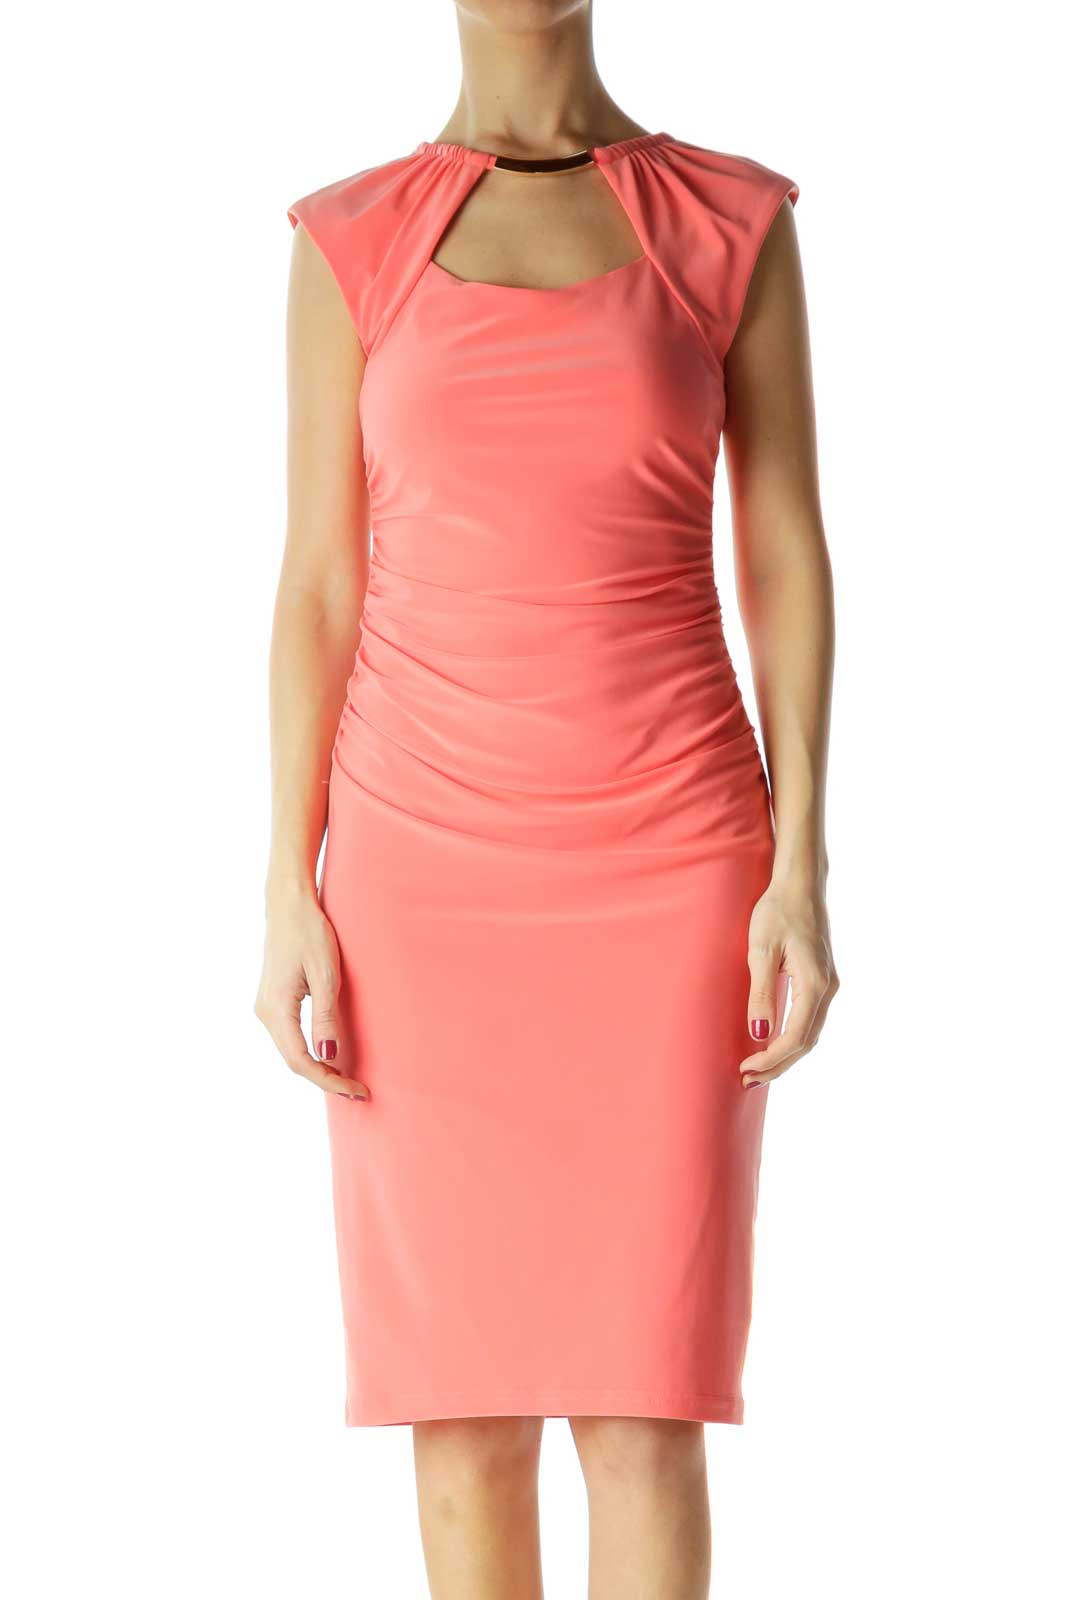 Pink Ruched Sleeveless Dress Front